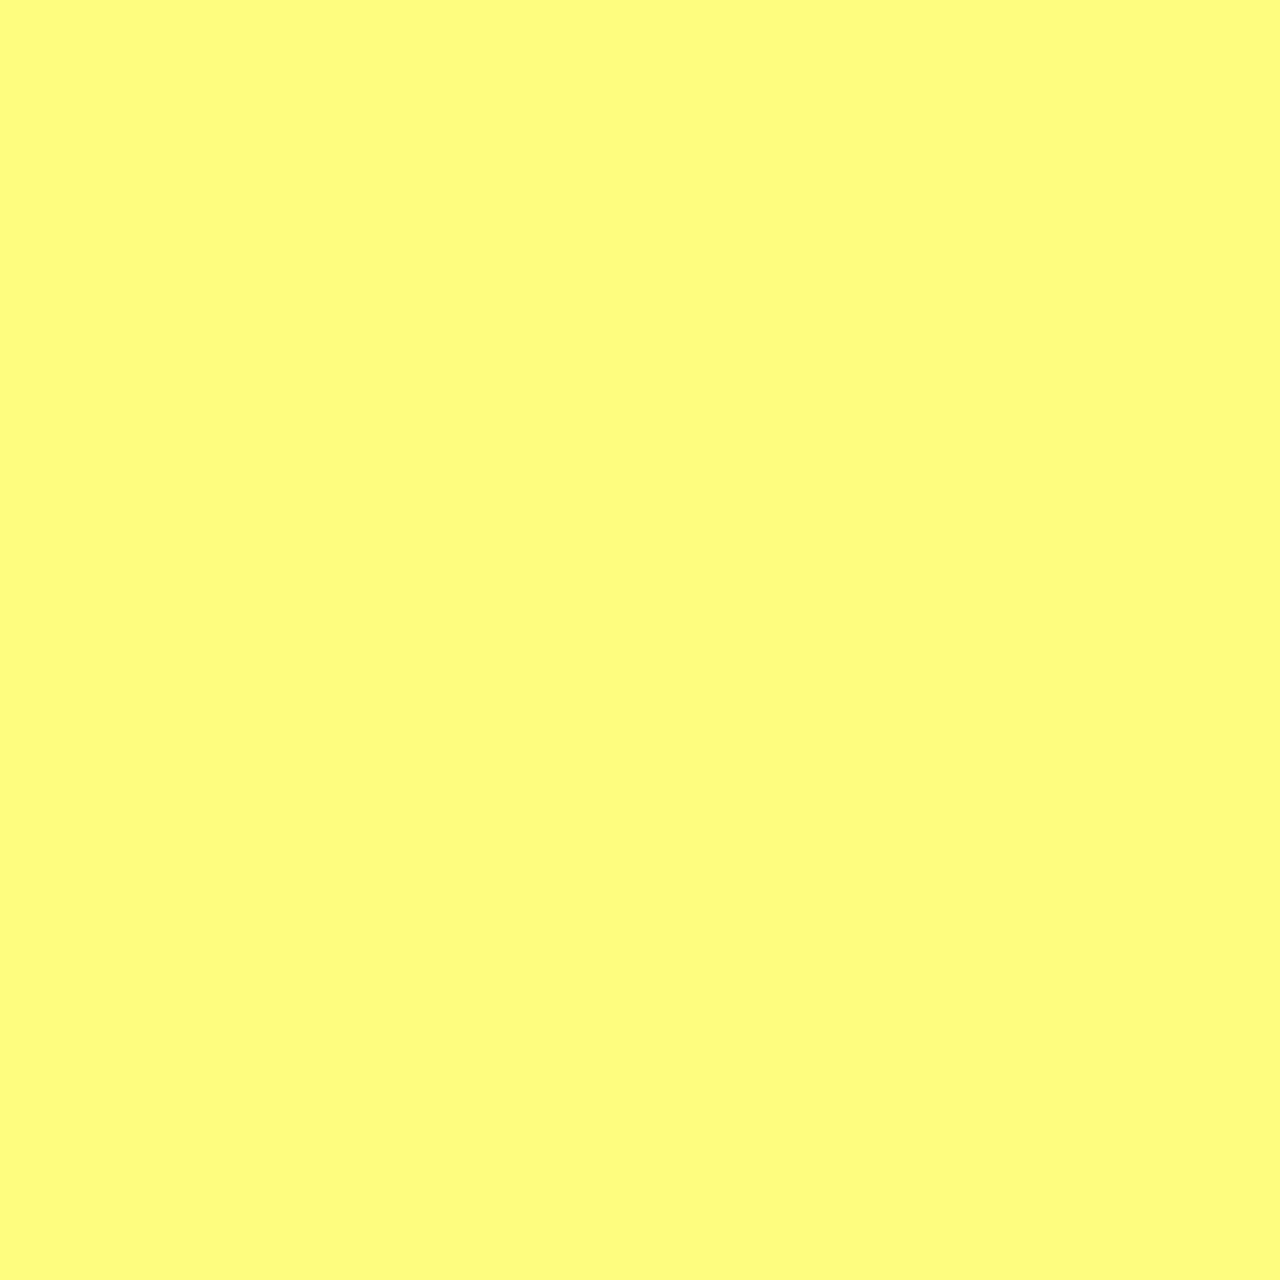 #4530 Rosco Gels Roscolux CalColor 30 Yellow, 20x24""